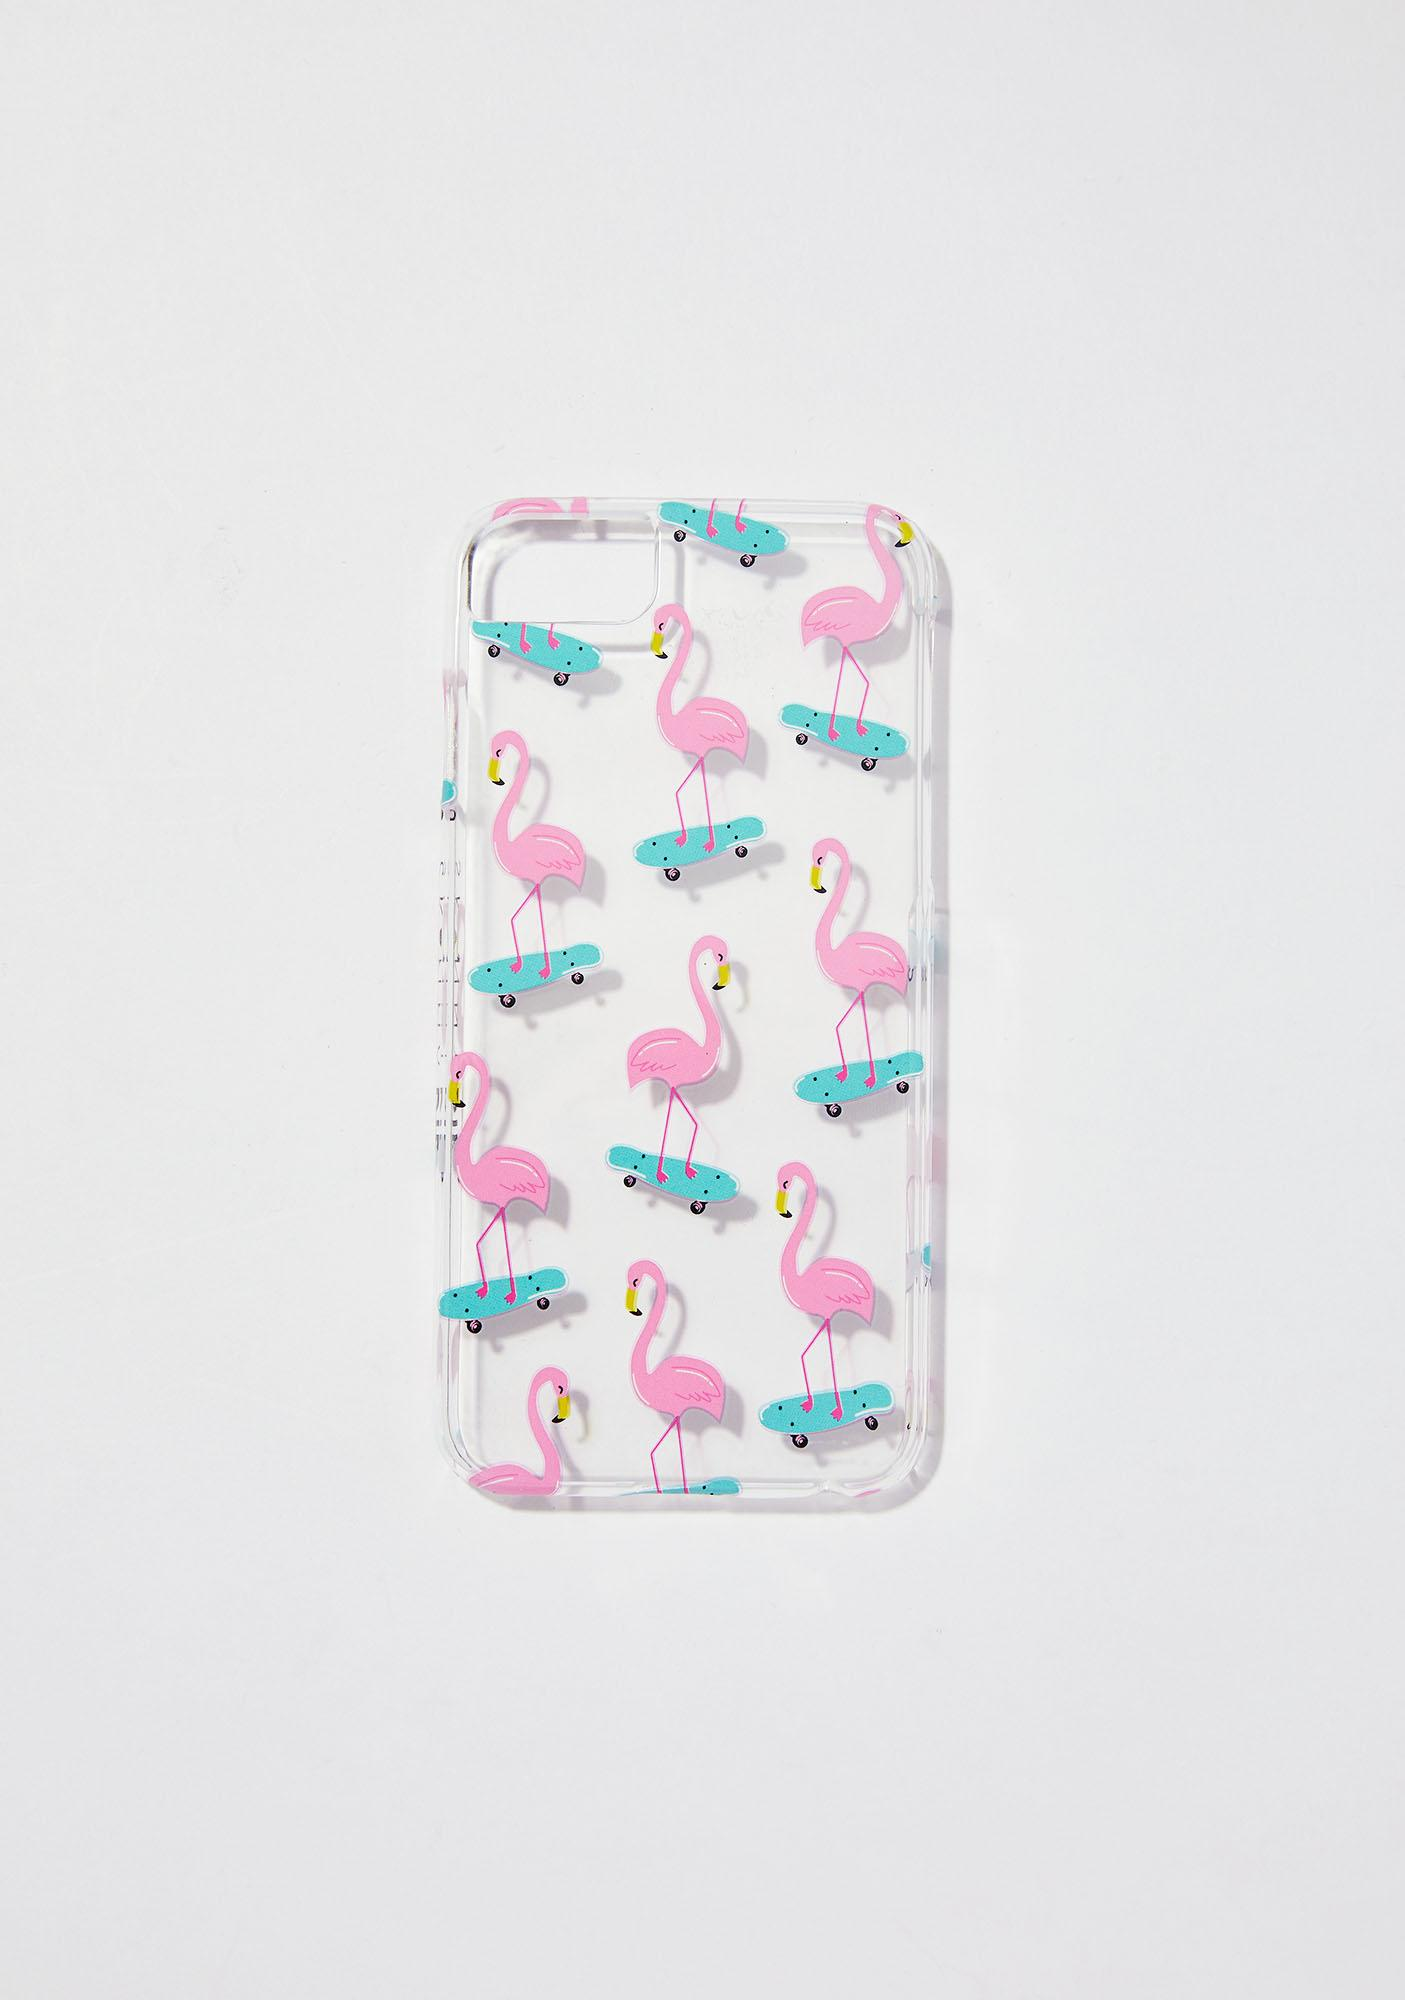 Skinnydip Skater Girl iPhone Case